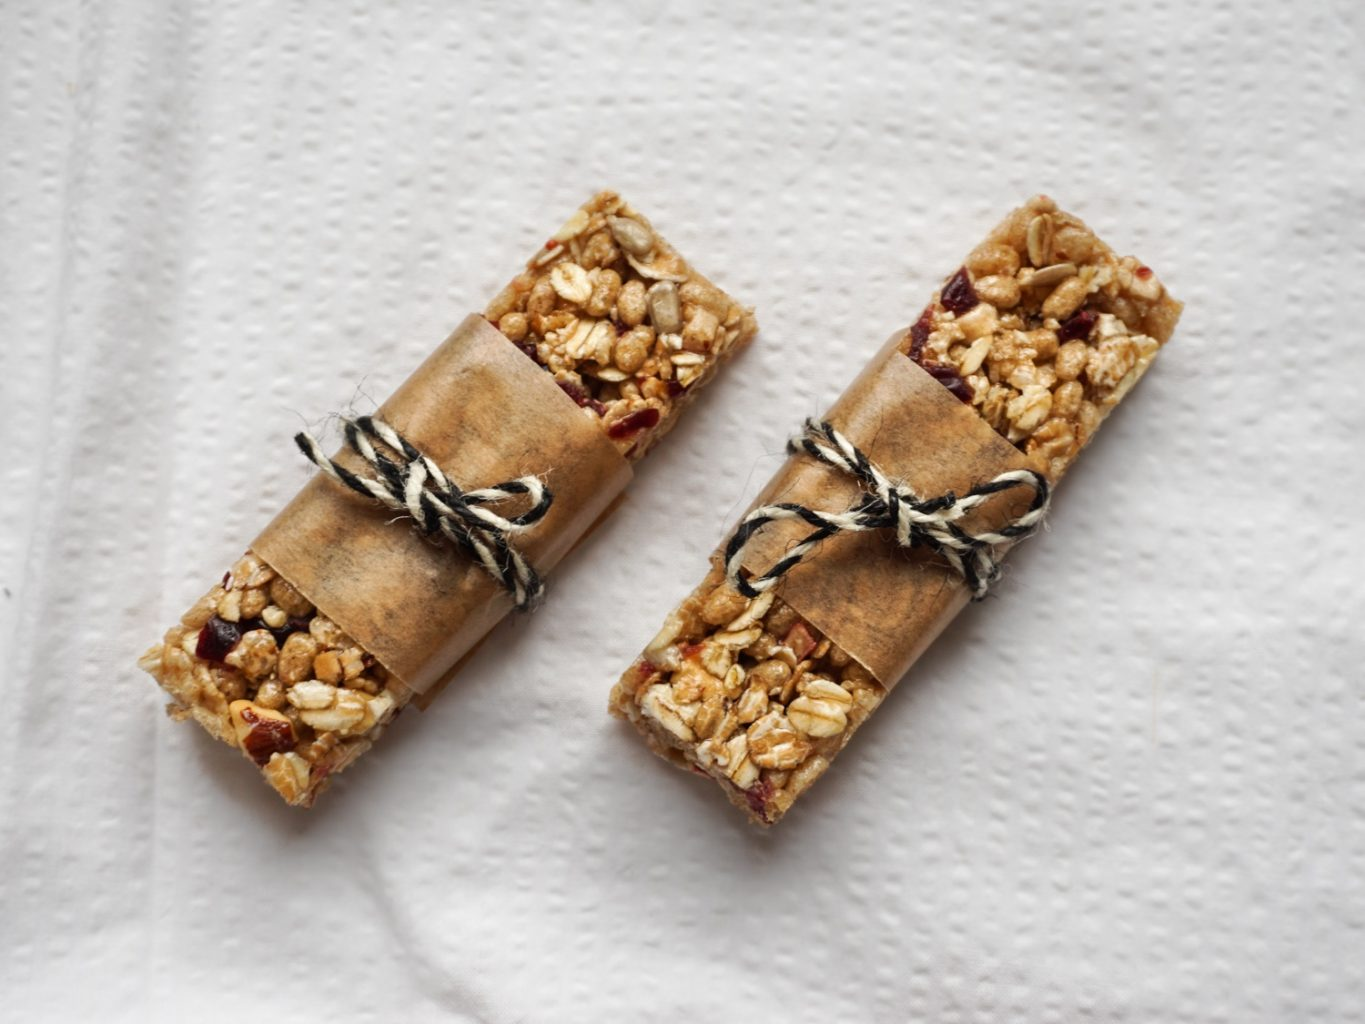 Muesli, Muesli bar, granola, diy, tutorial, food, brainfood-4